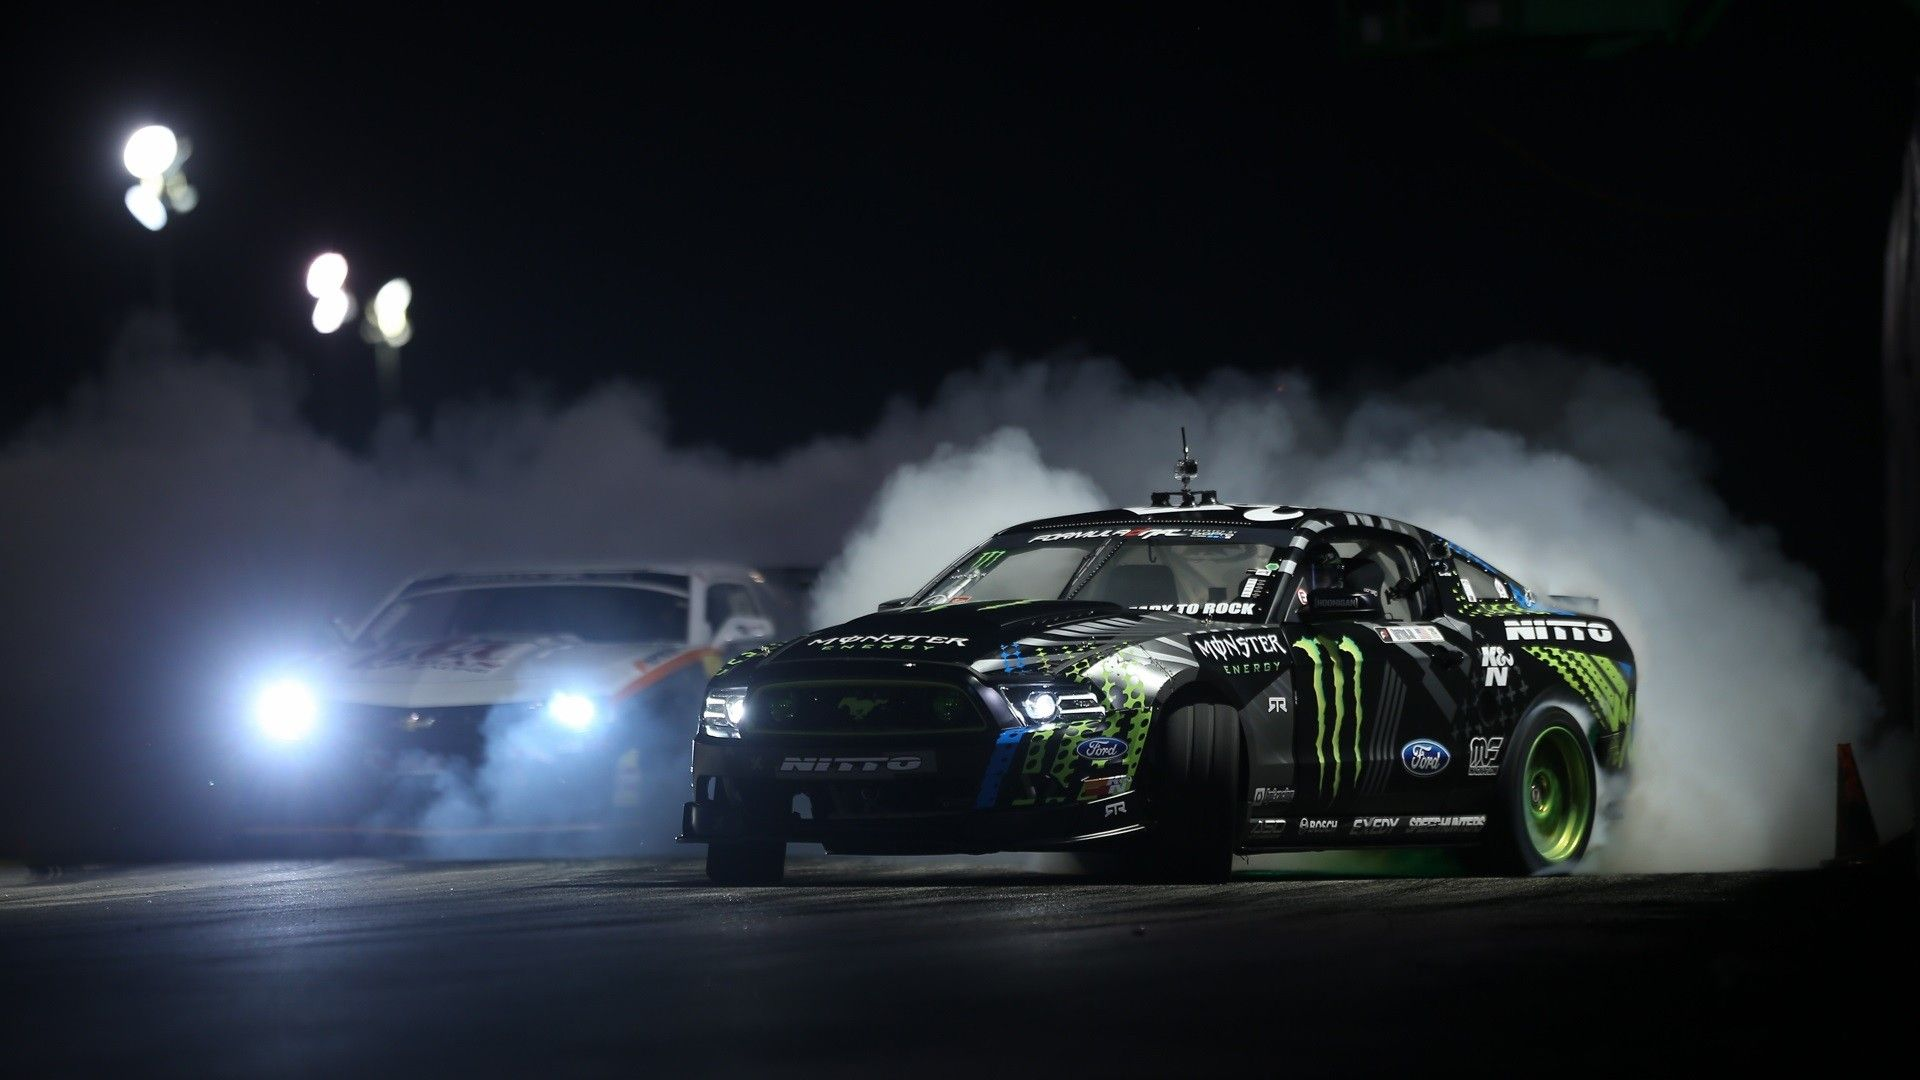 General 1920x1080 Ford Mustang Chevrolet Camaro Drift Monster Energy Car Wallpapers Ford Racing Best Car Photo